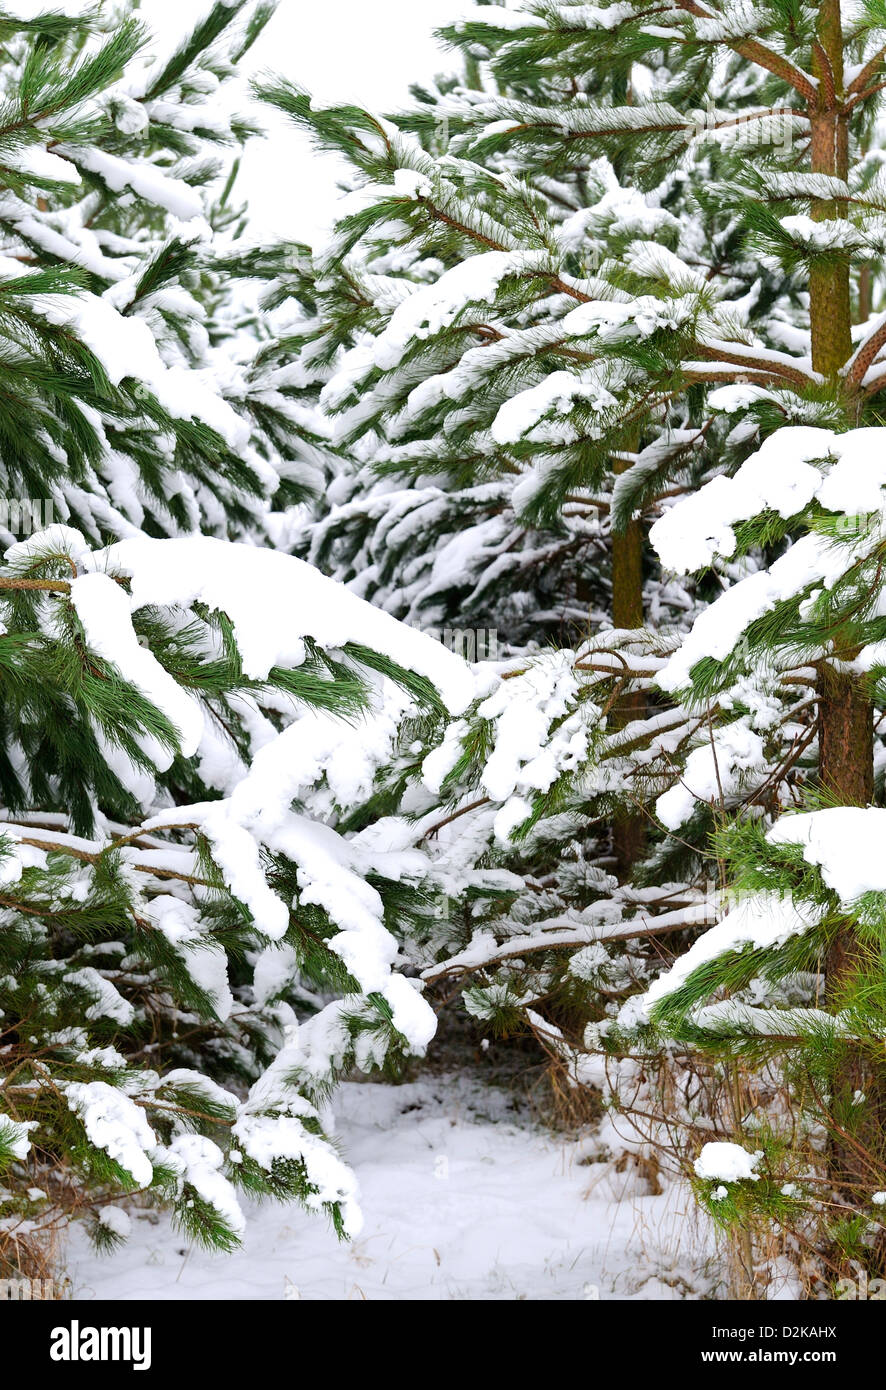 Conifers or pine trees with their leaves or needles covered with a layer of snow. - Stock Image